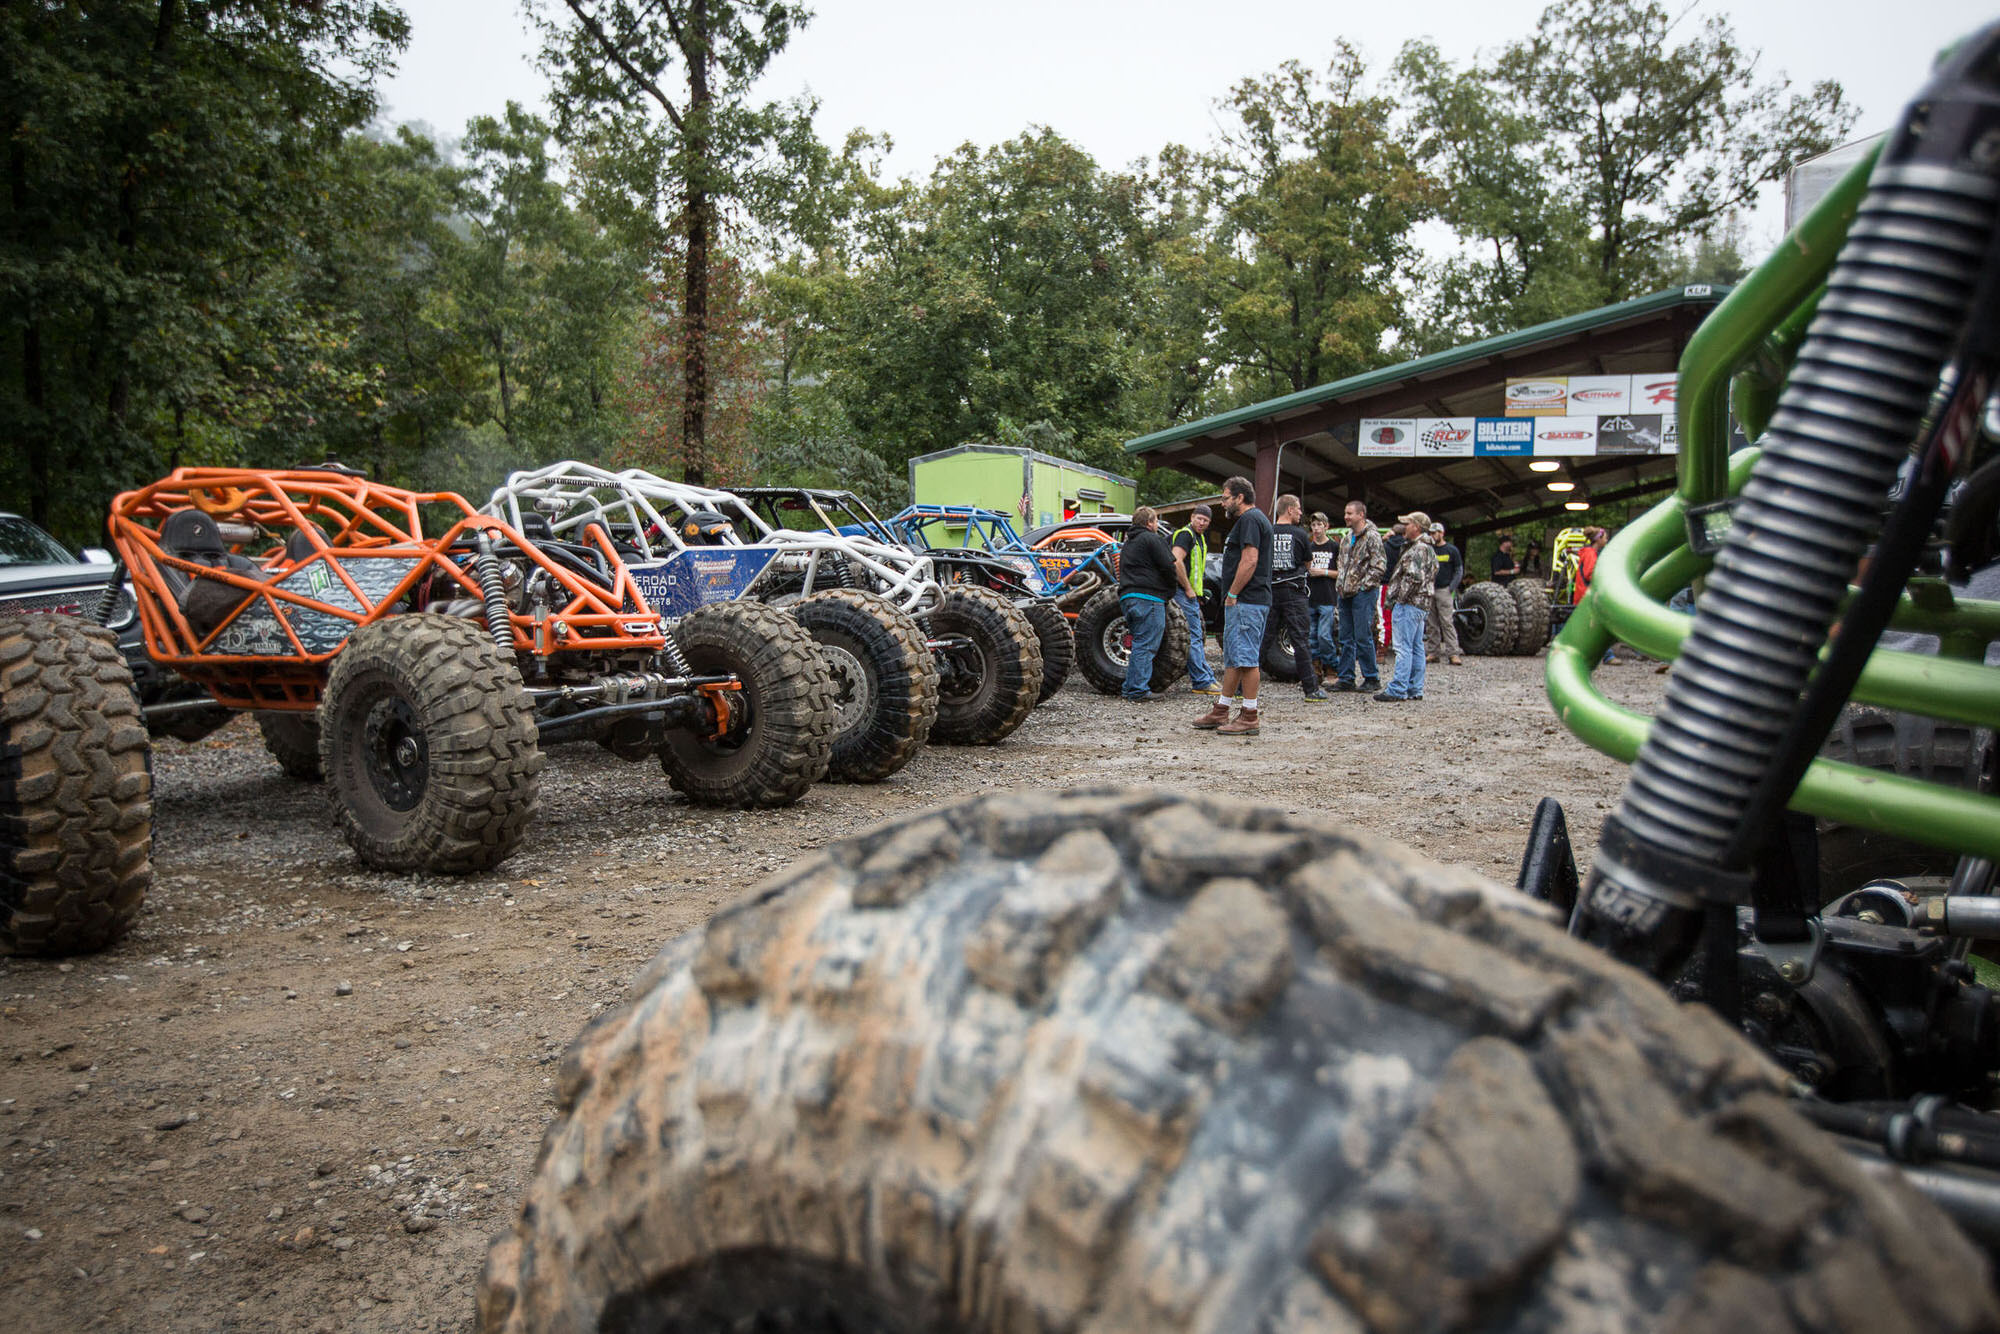 Rock Bouncers line up in Arkansas, photographed for Car and Driver Magazine